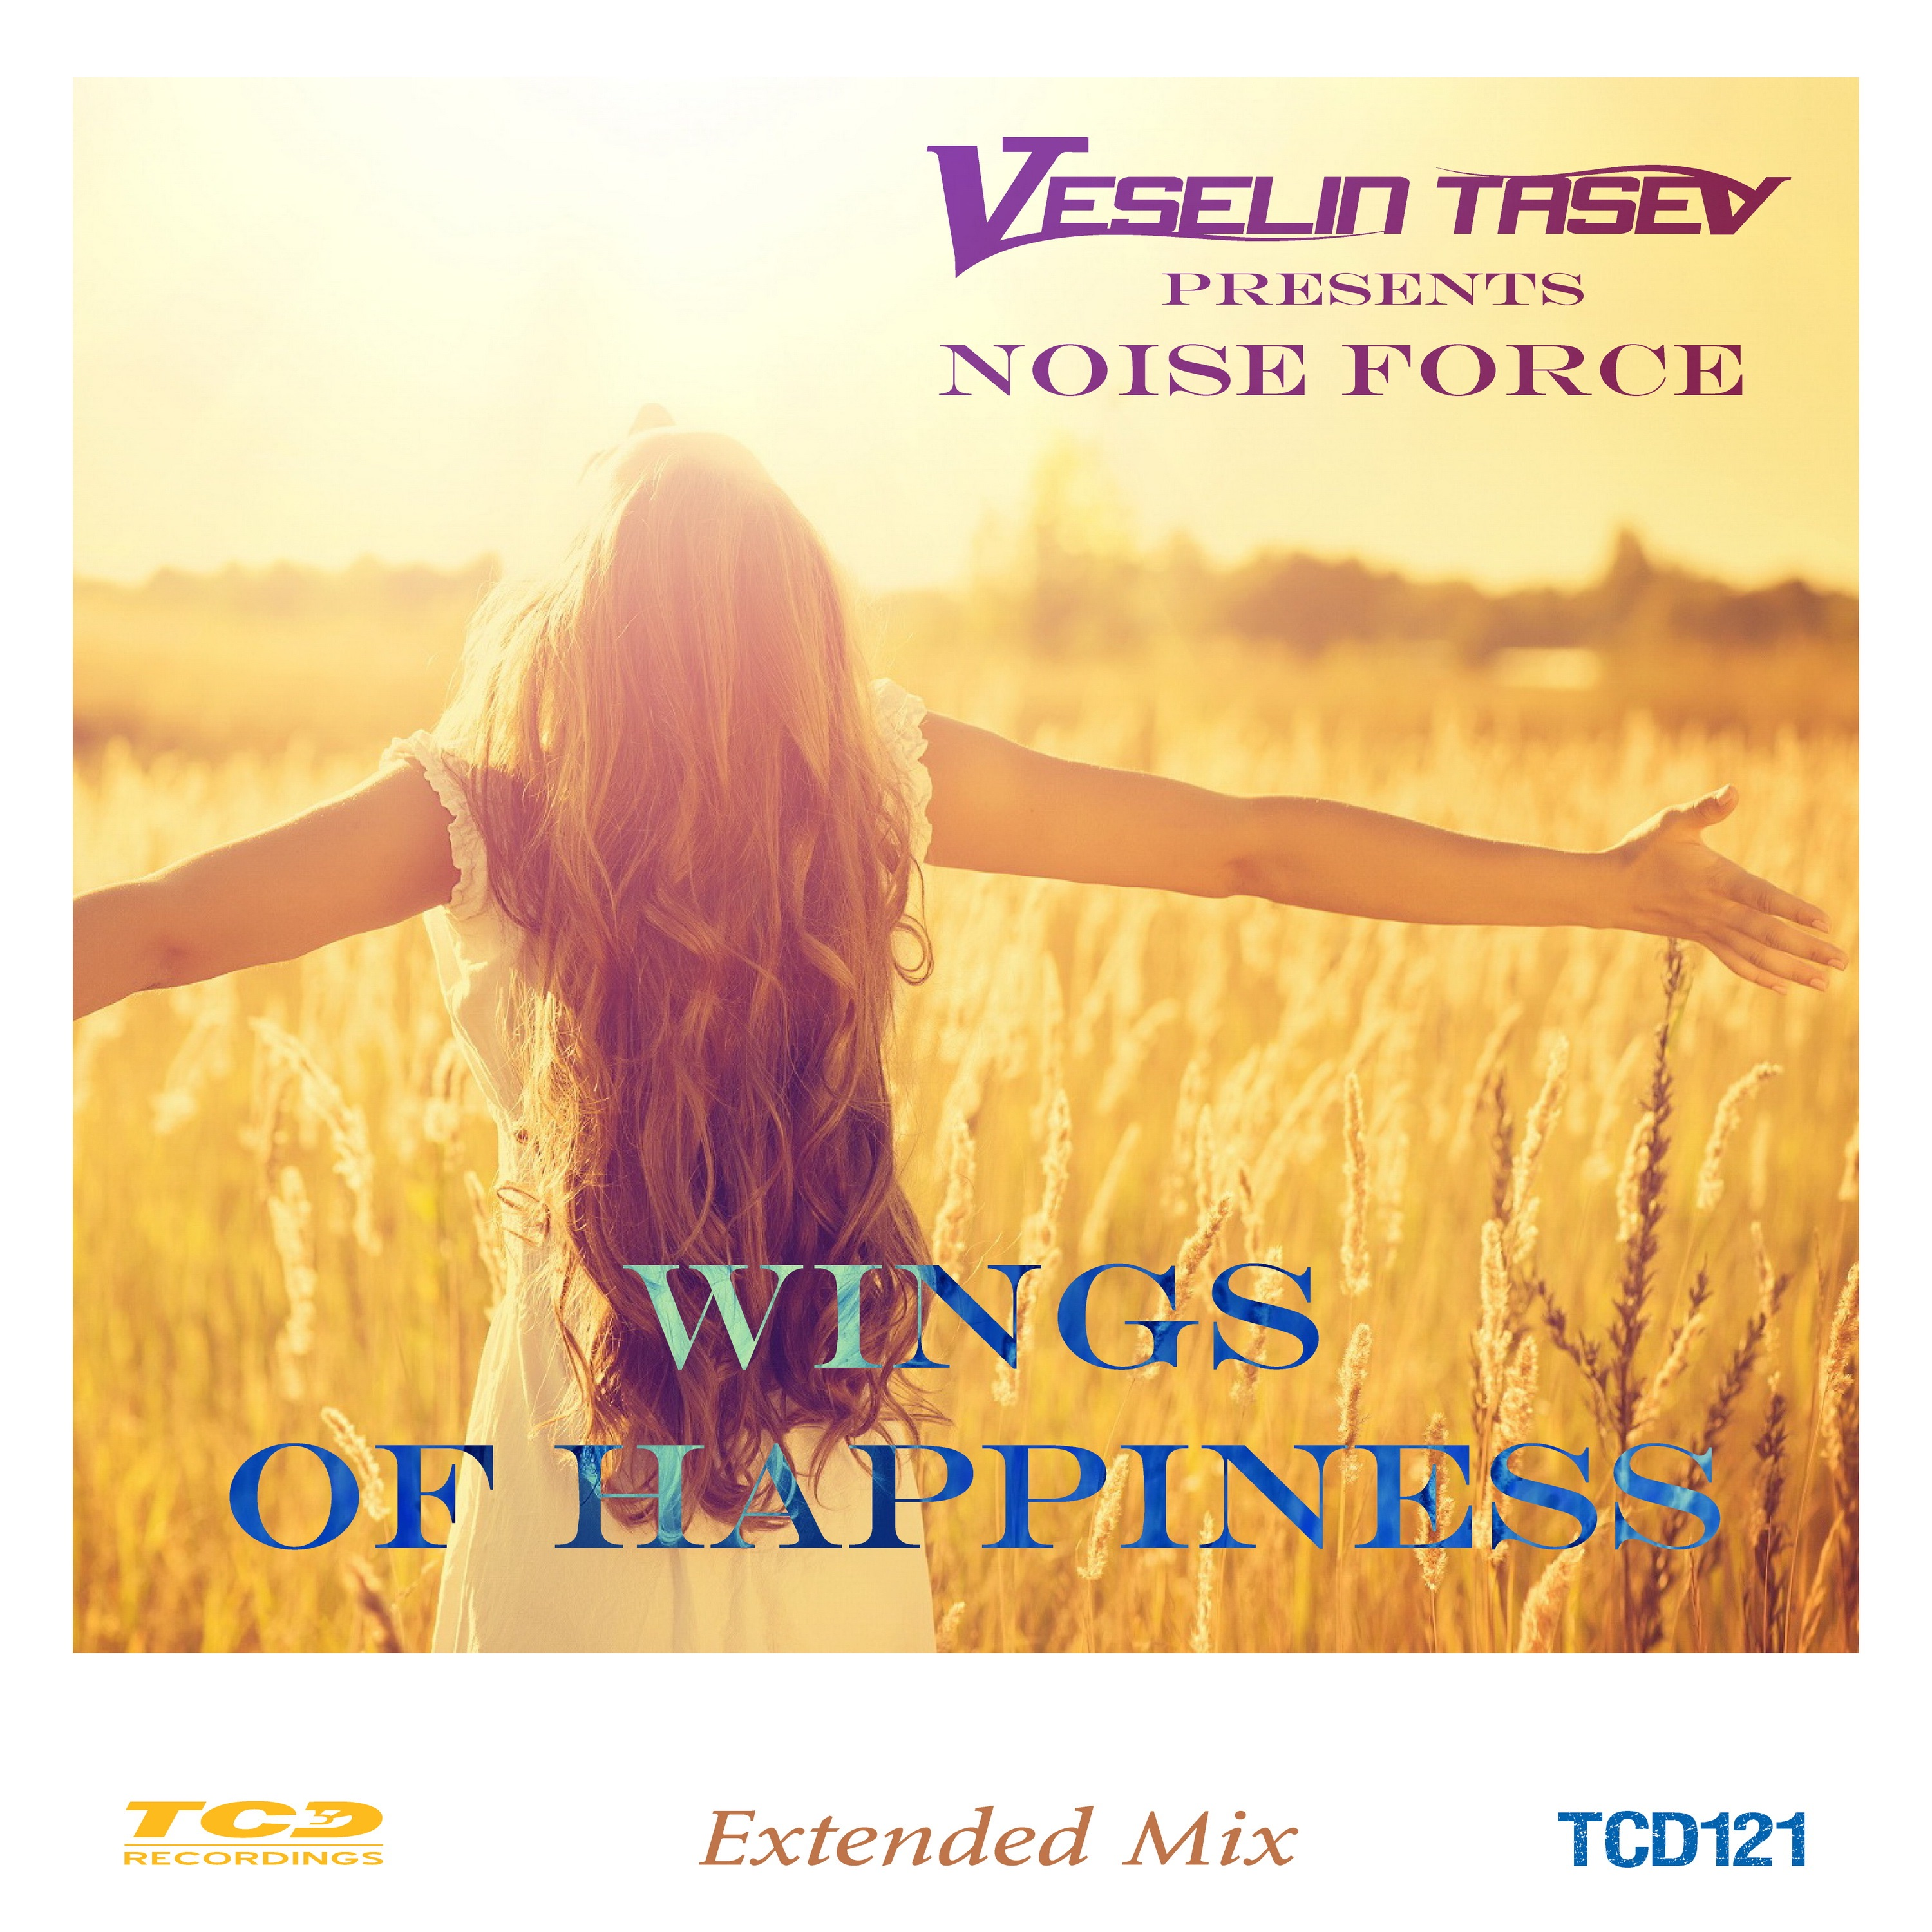 Wings of Happiness [Noise Force Presents Veselin Tasev] [Extended Mix] - Single